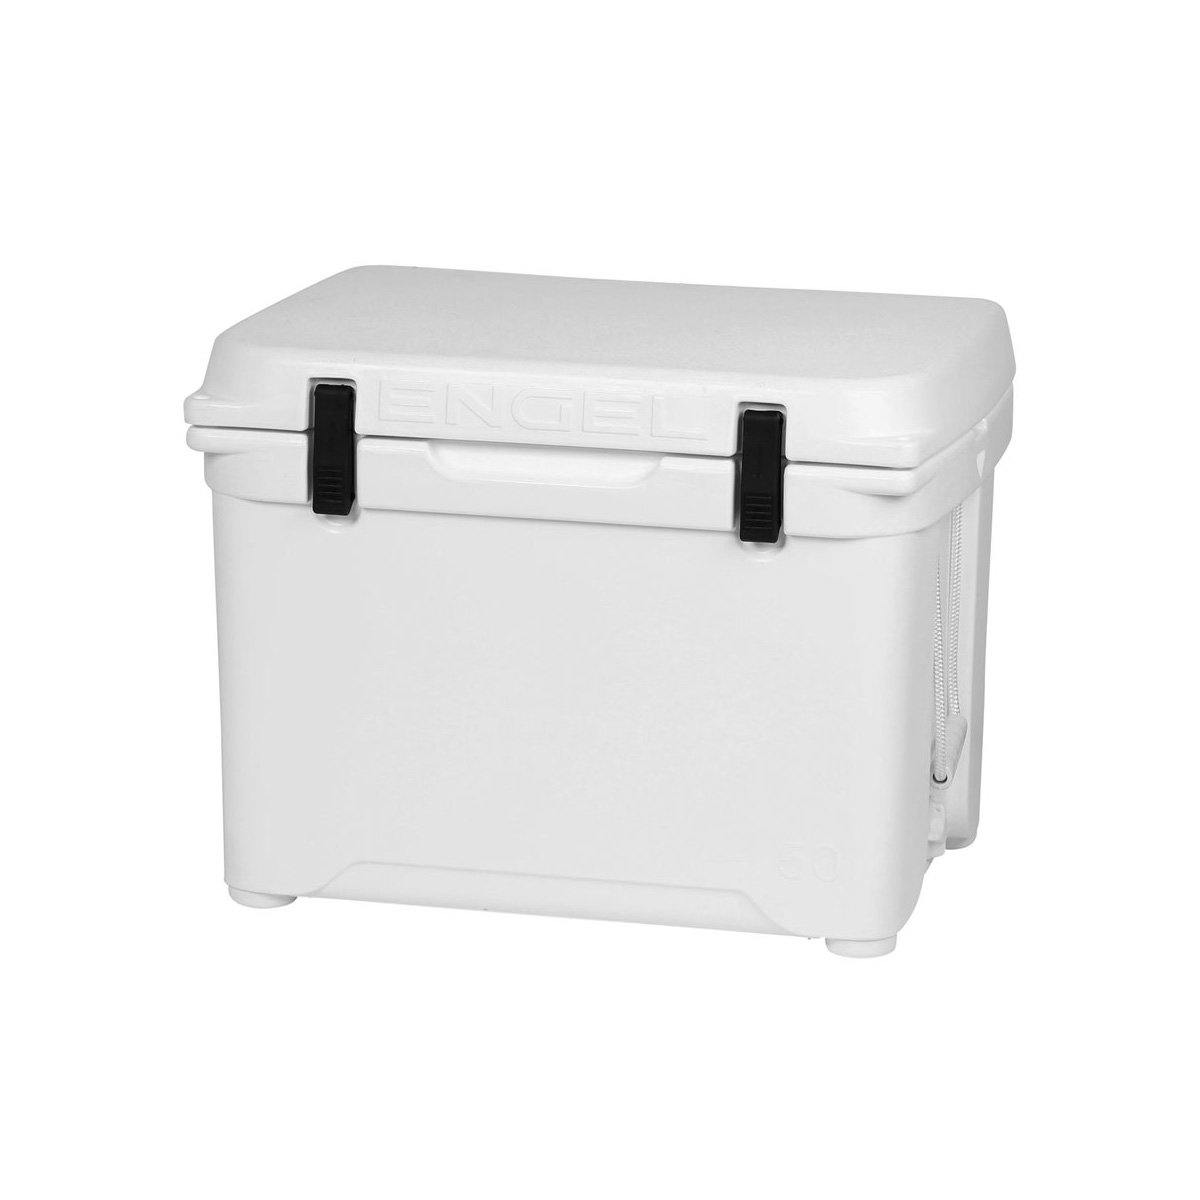 Engel 65 Hard Cooler